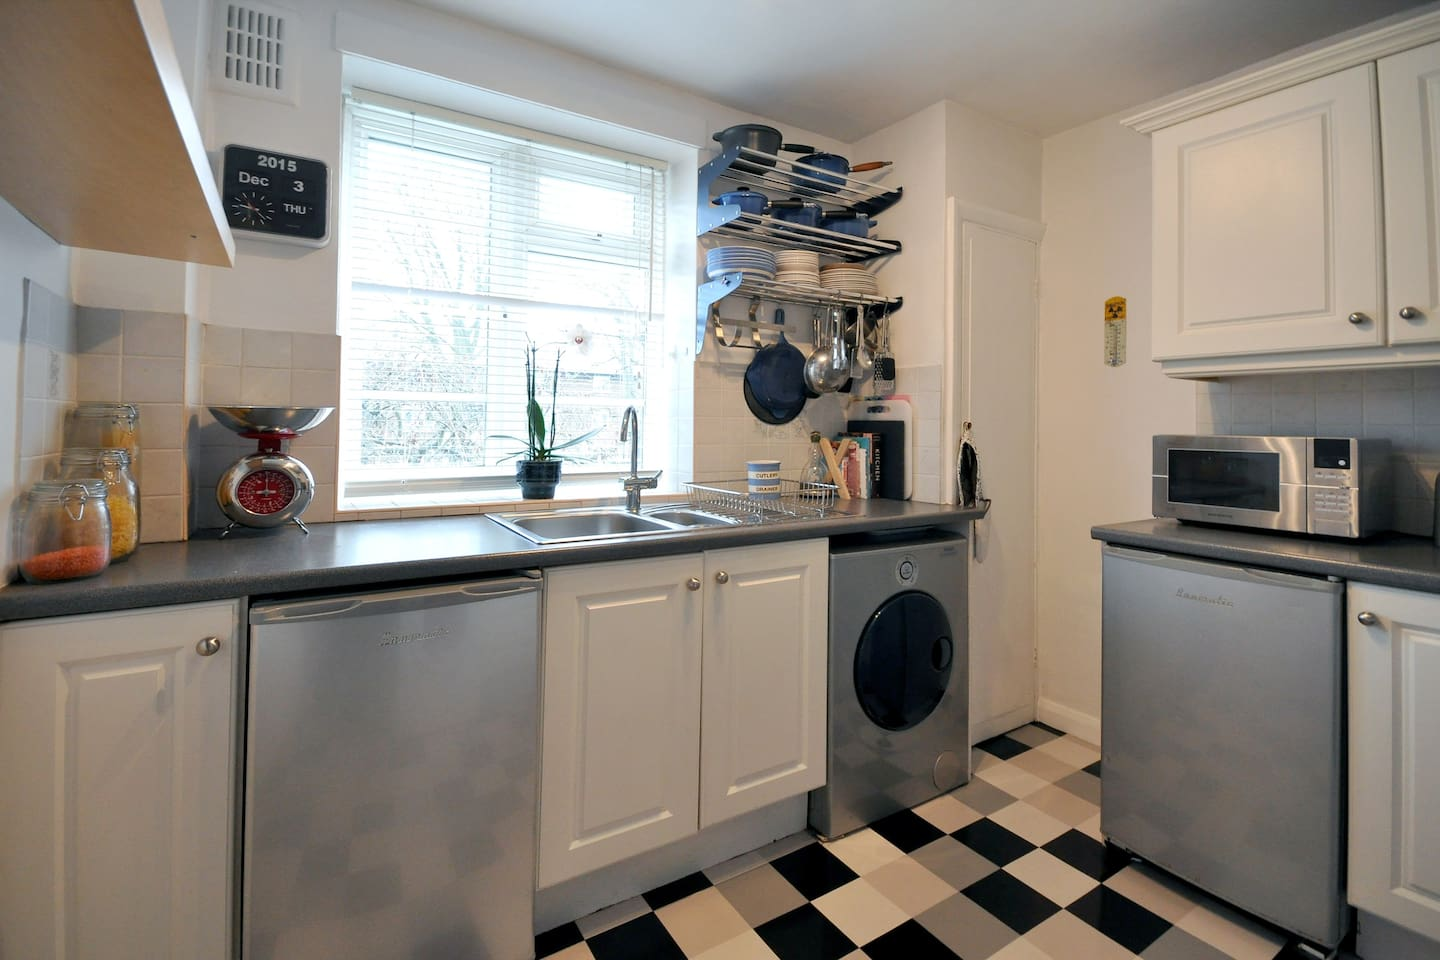 clean kitchen, washing machine, fridge, freezer , microwave